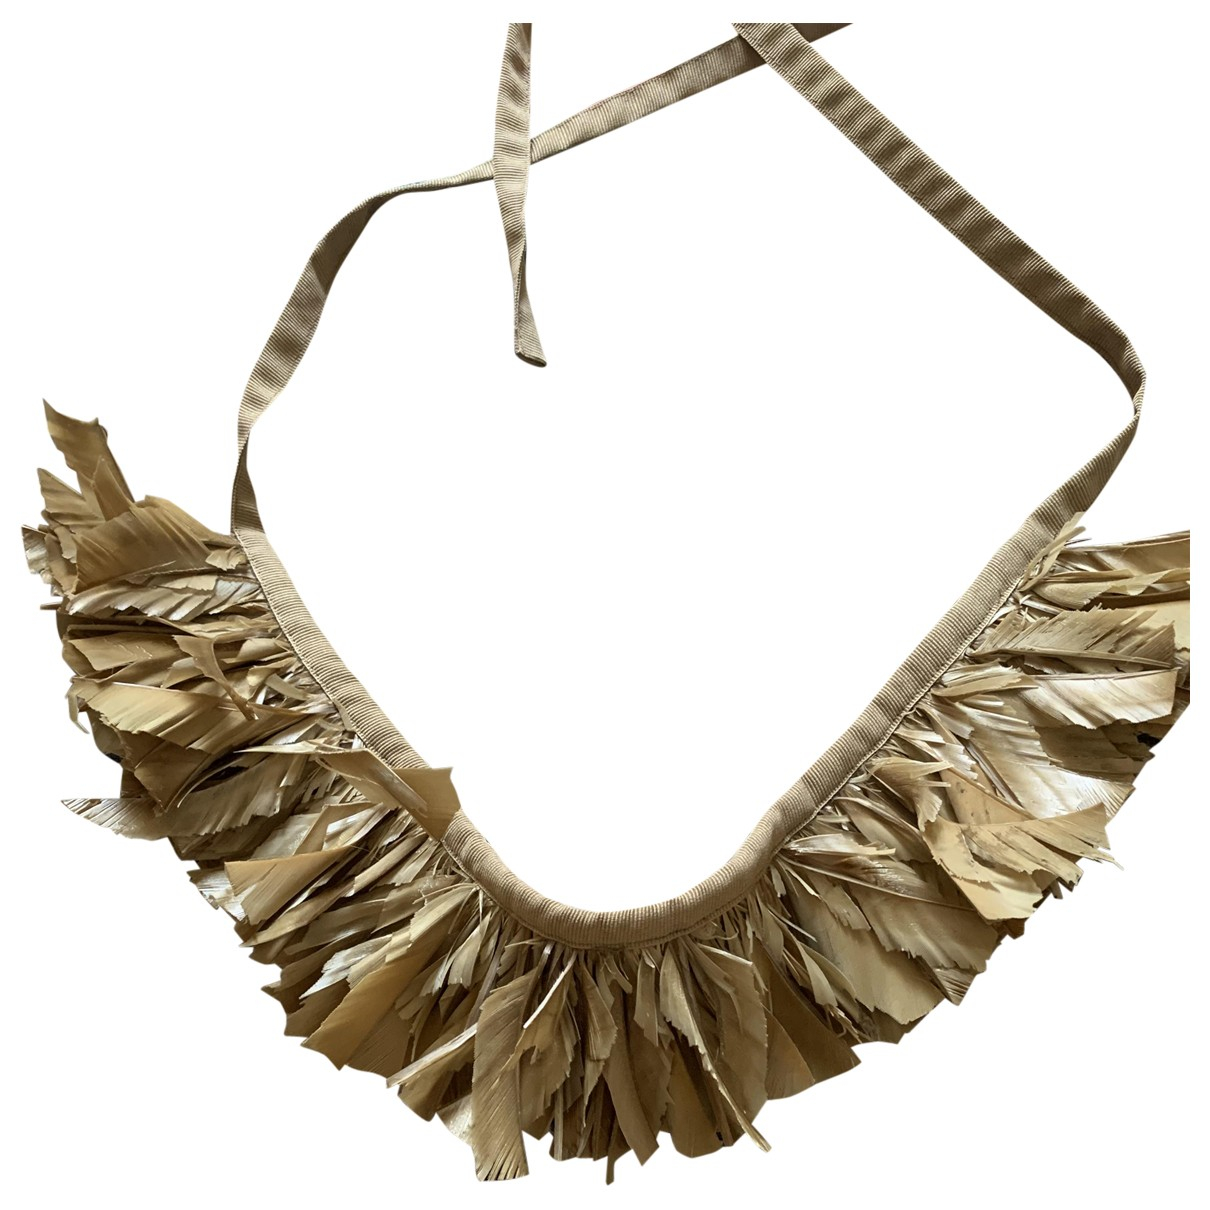 Liviana Conti N Cloth necklace for Women N